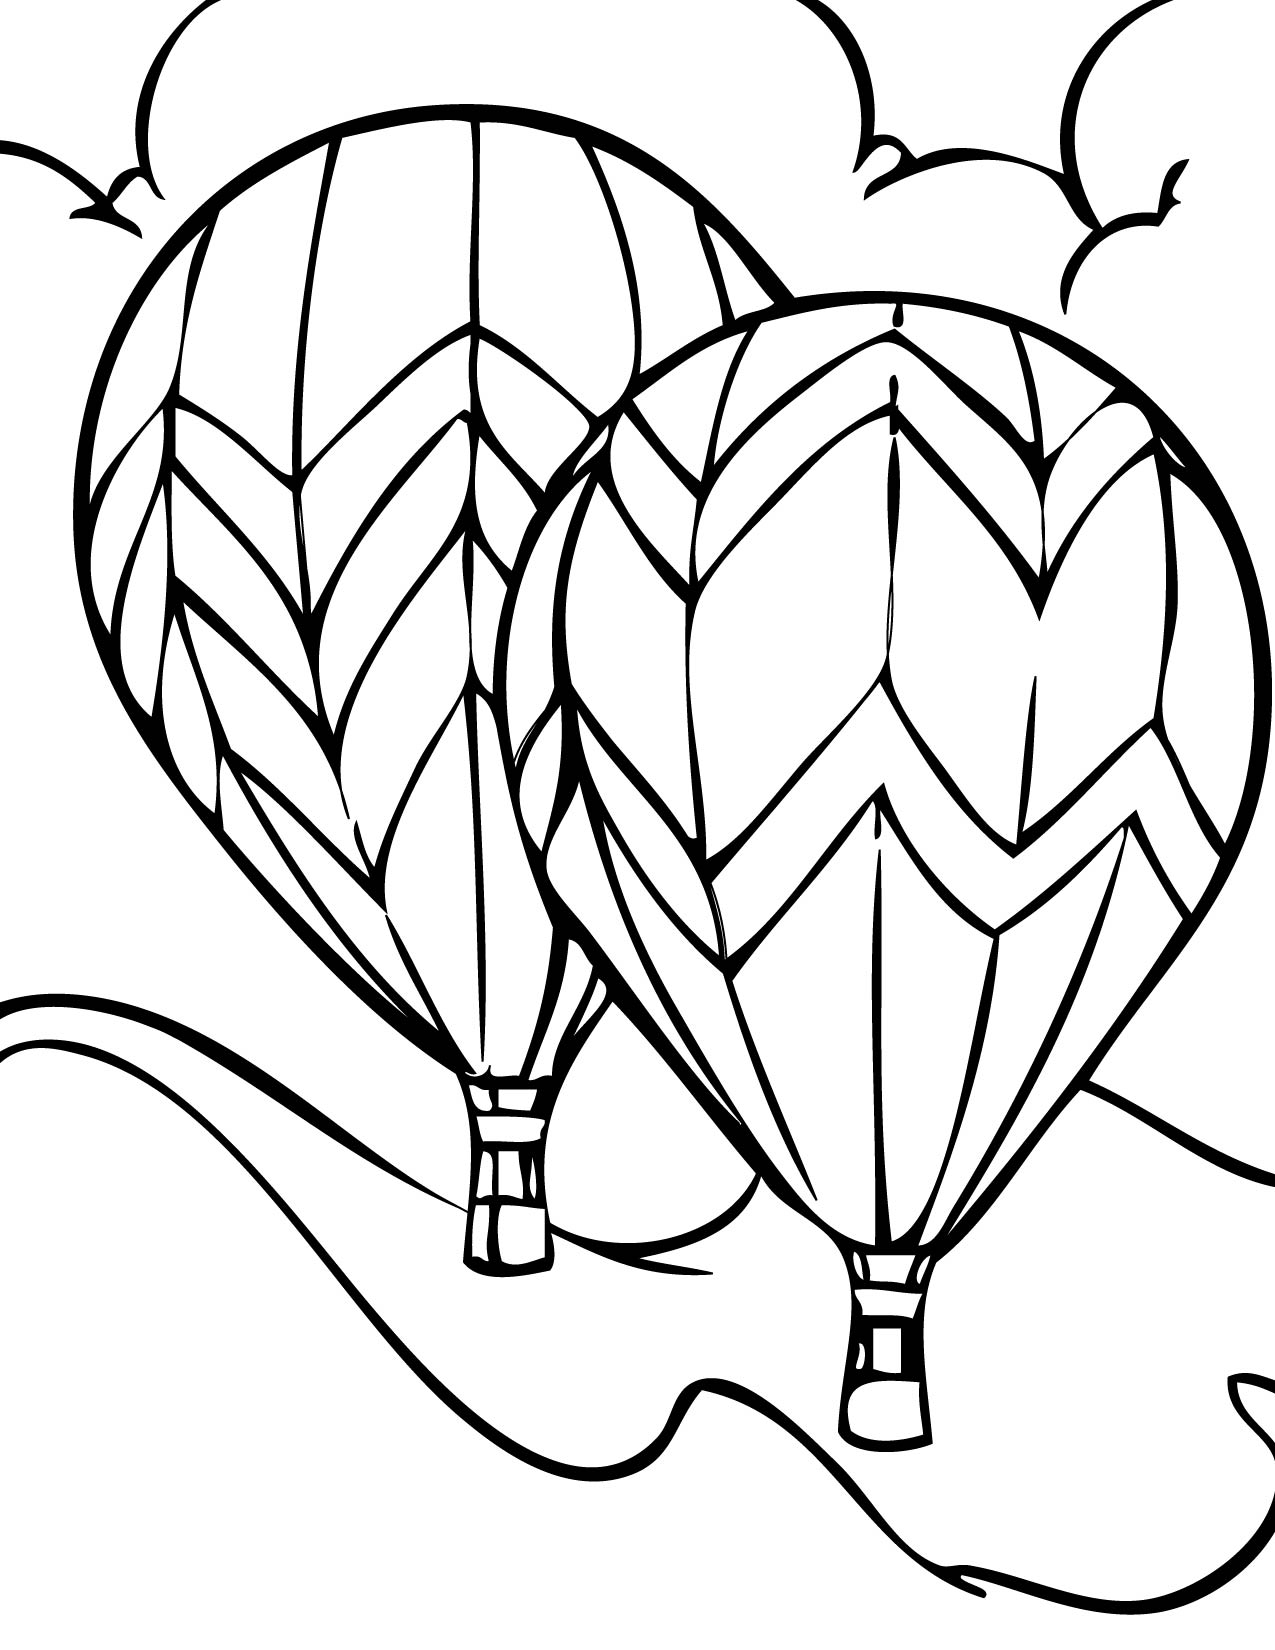 Colouring activities tes - Hot Air Balloon Drawing Template Clipart Panda Free Clipart Images